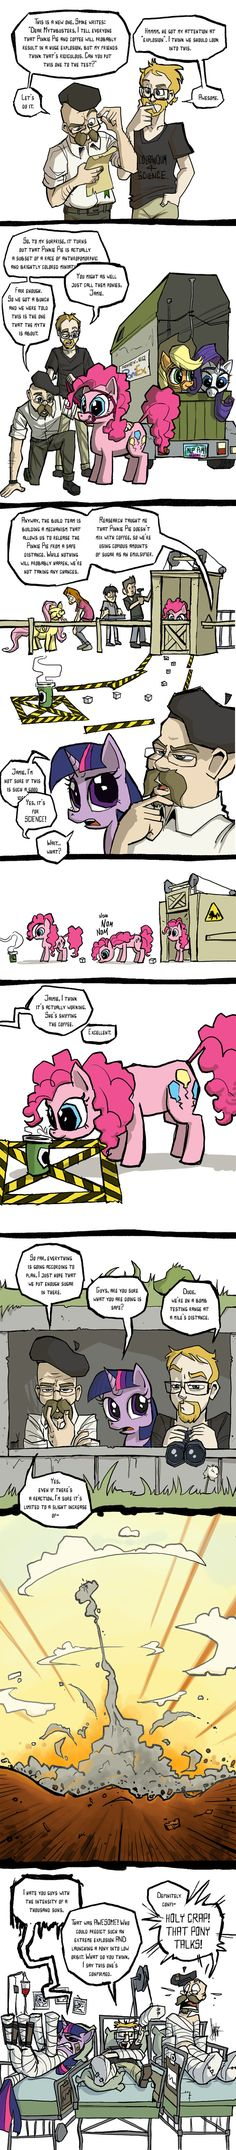 Ok, I have a pretty strong distaste for MLP:FIM, but this had me cracking up! Mythbusters Investigate My Little Ponies.